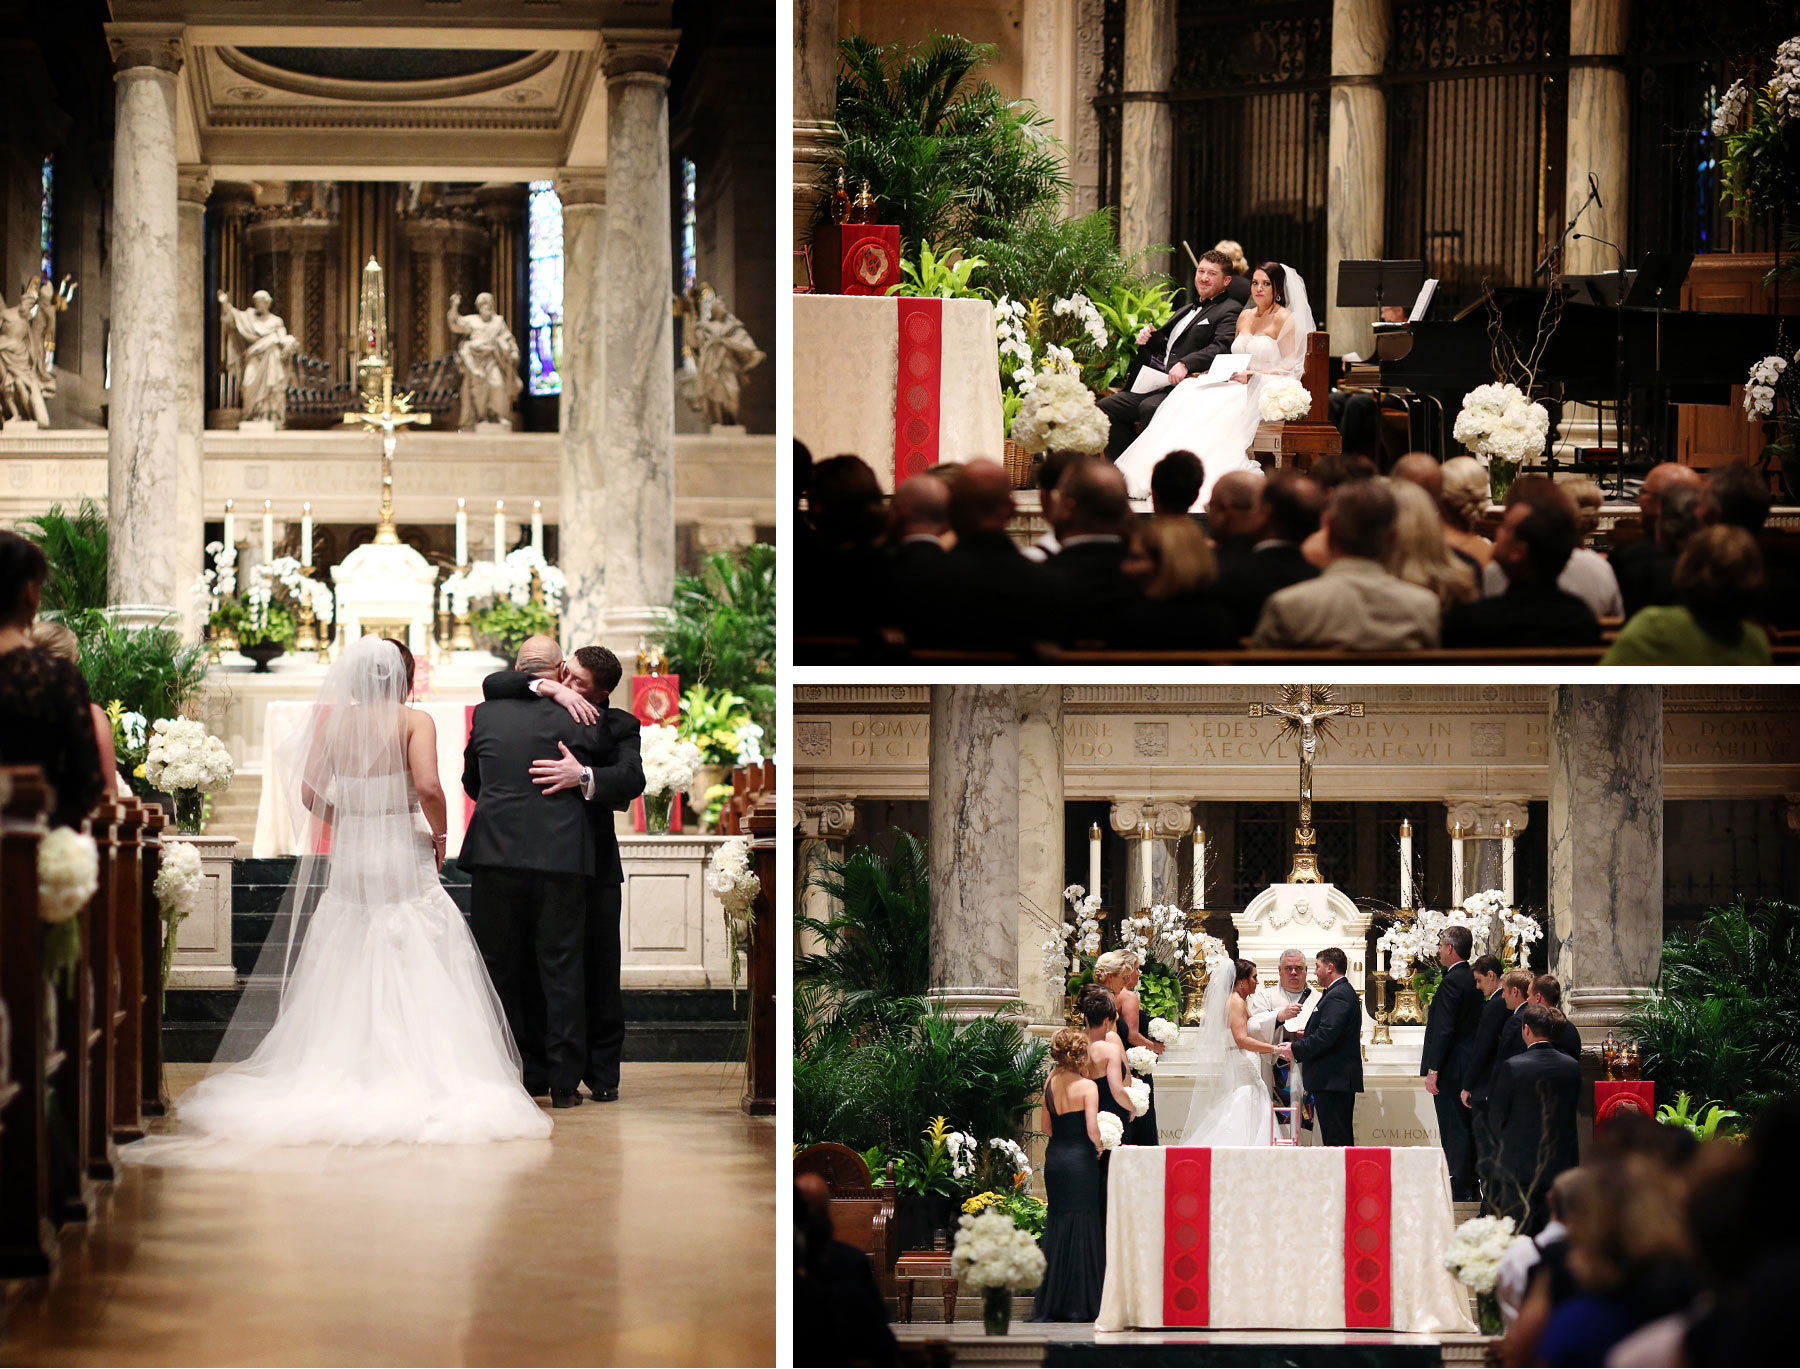 10-Minneapolis-Minnesota-Wedding-Photography-by-Vick-Photography-Downtown-Basilica-of-St-Marys-Church-Ceremony-Megan-and-Andrew.jpg